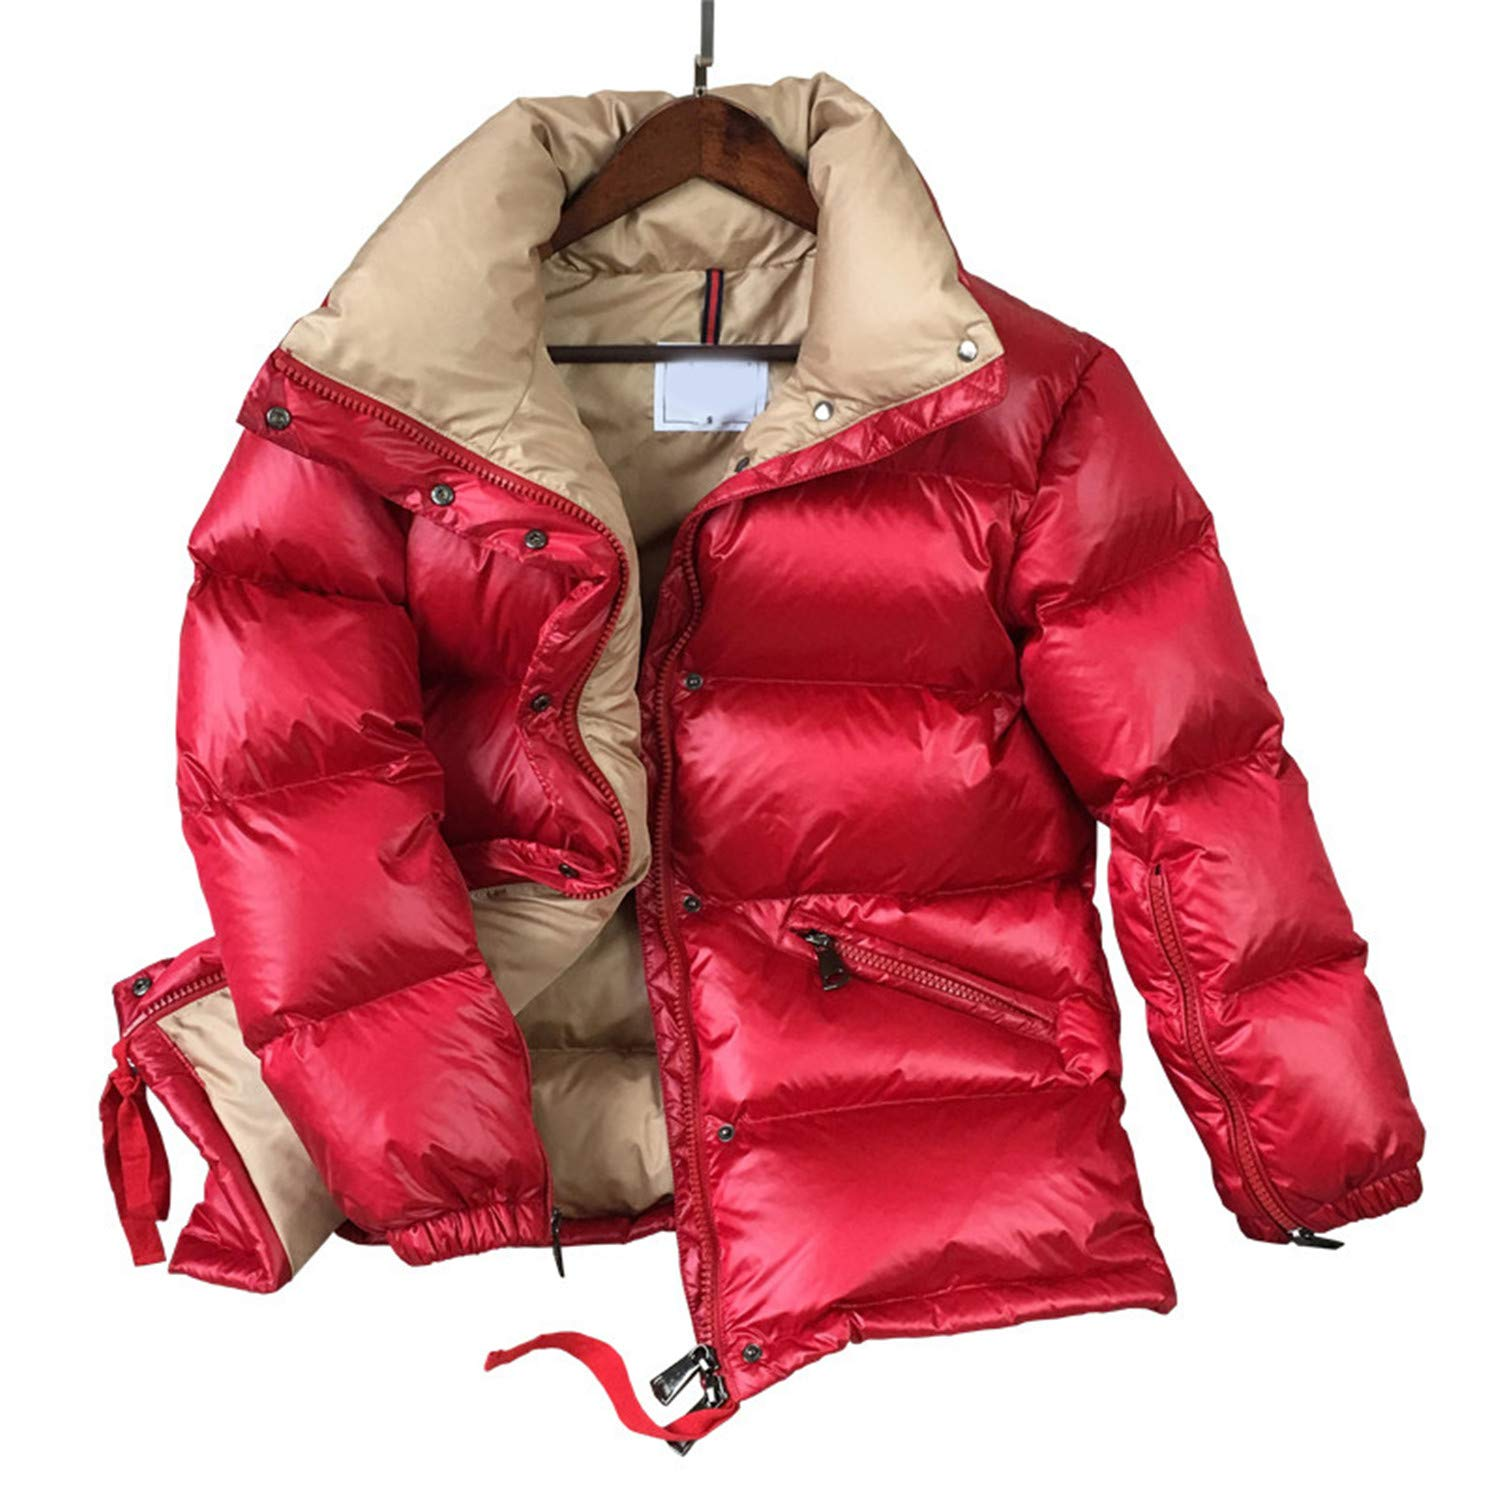 Amazon.com: New Winter Duck Down Jacket Women Thick Warm ...